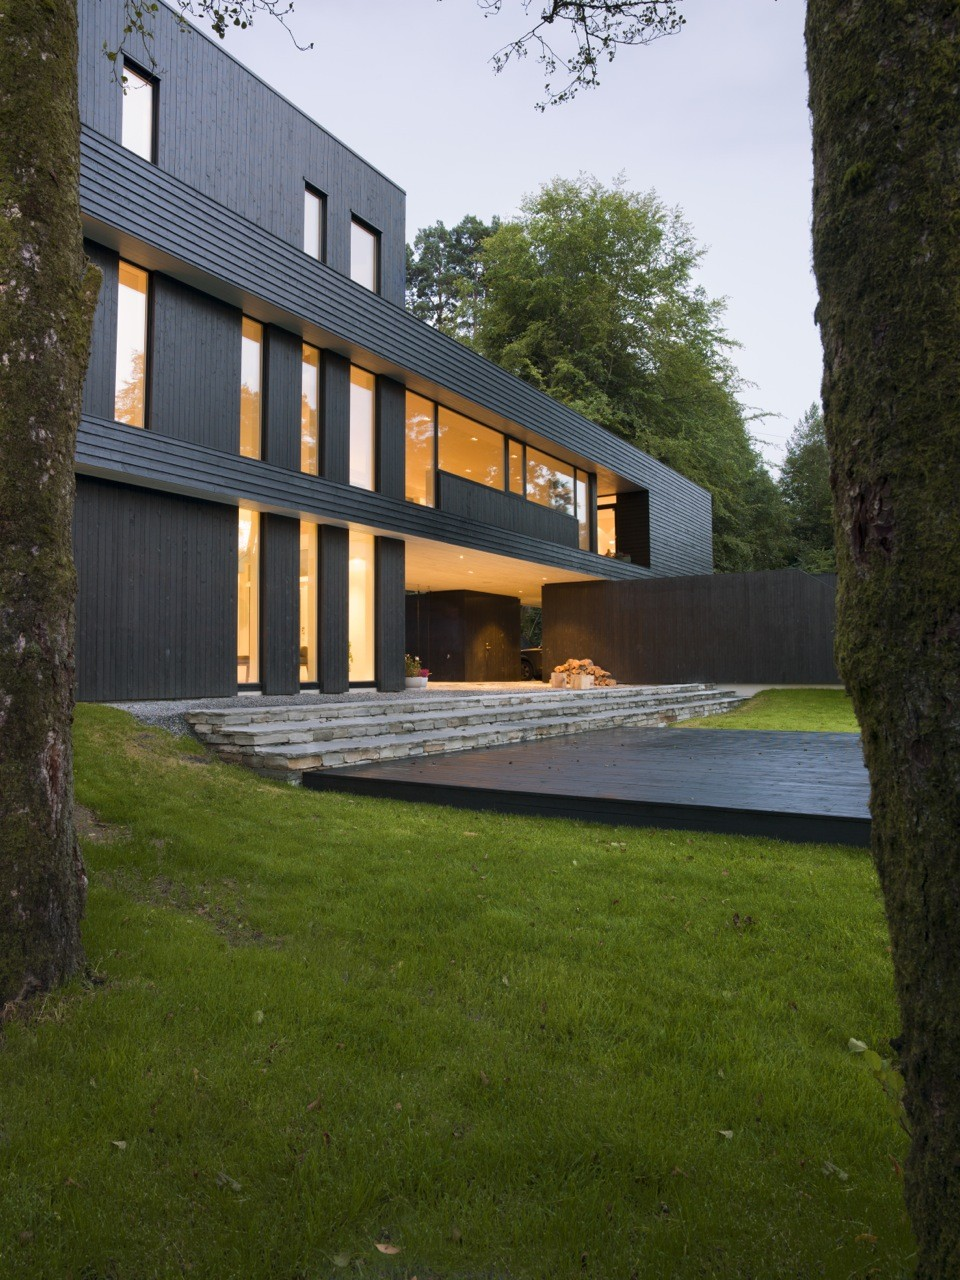 Villa s by saunders architecture in bergen norway for Villa architect